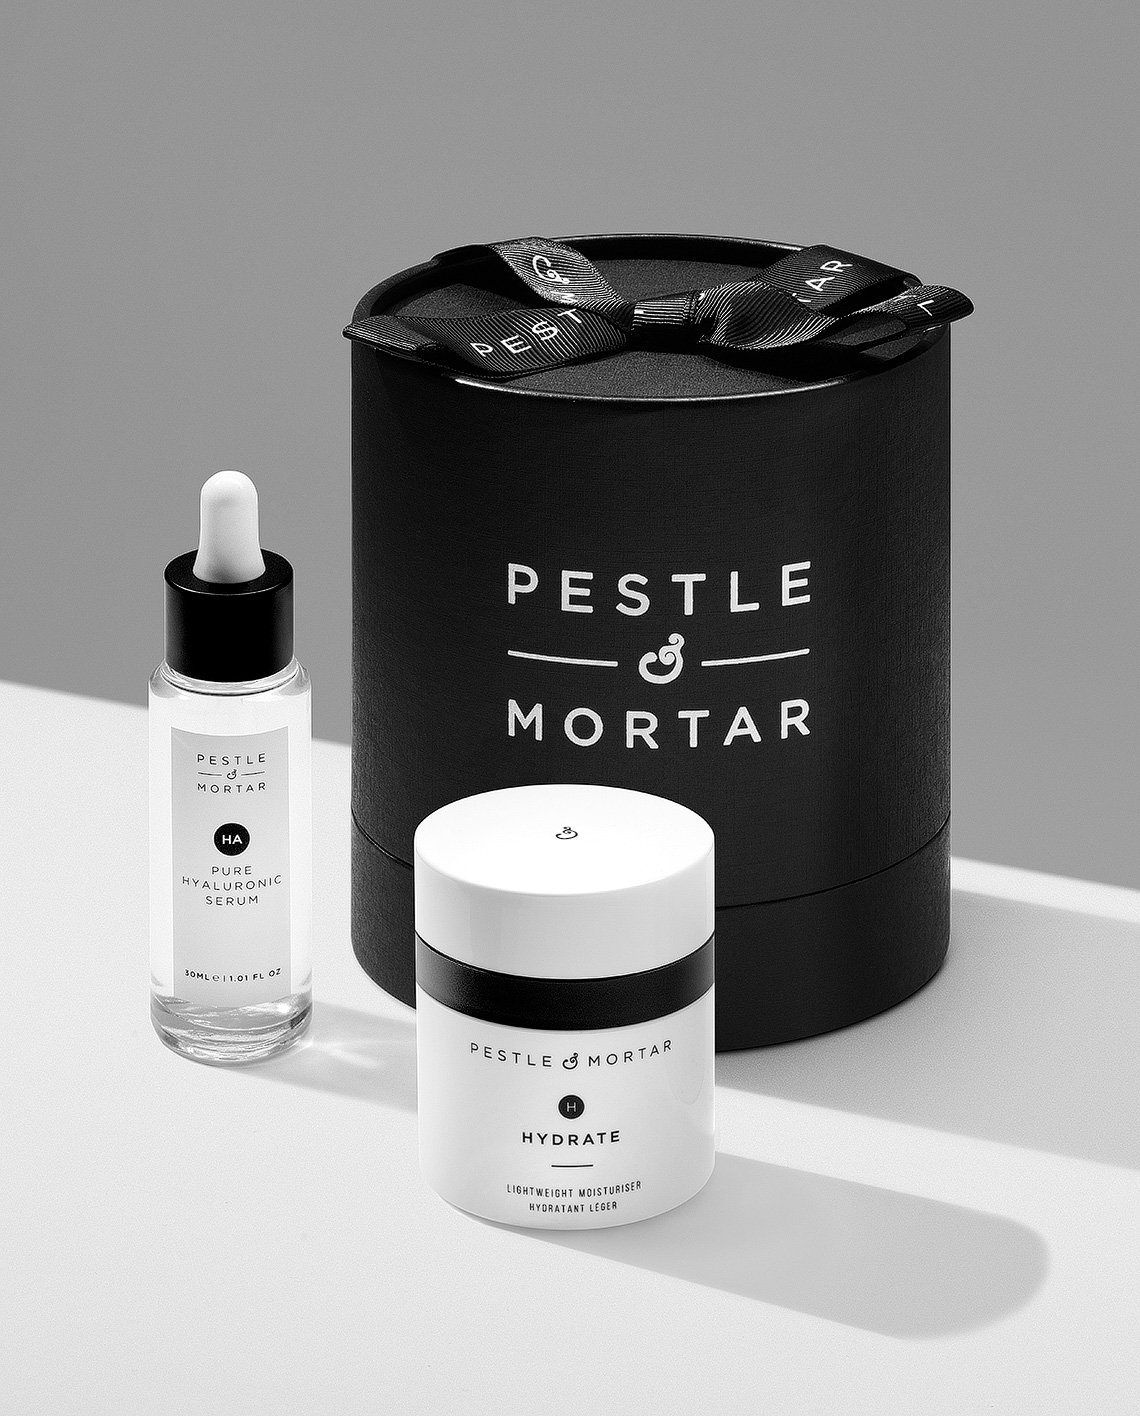 Pestle & Mortar Hidratante Duo Set de Regalo - Puro Hialurónico Suero 30 ml Pestle & Mortar Cosmetics